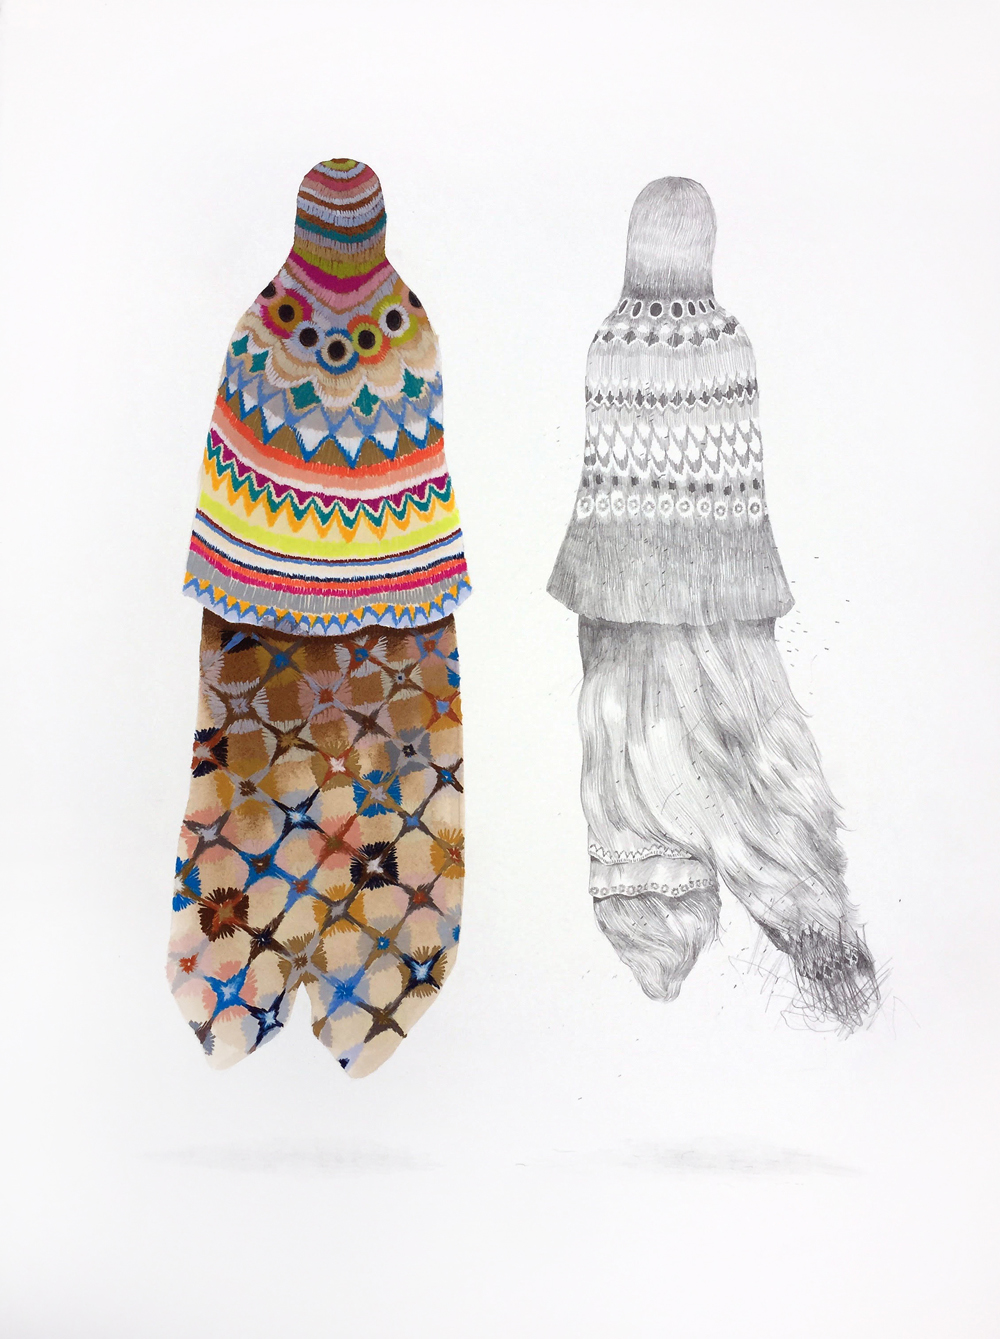 Gala Bent, A Garment for Magdalena (Hairy Mary), 2019, graphite, drawing pencils and gouache on paper, 30 x 22 inches, $2400.